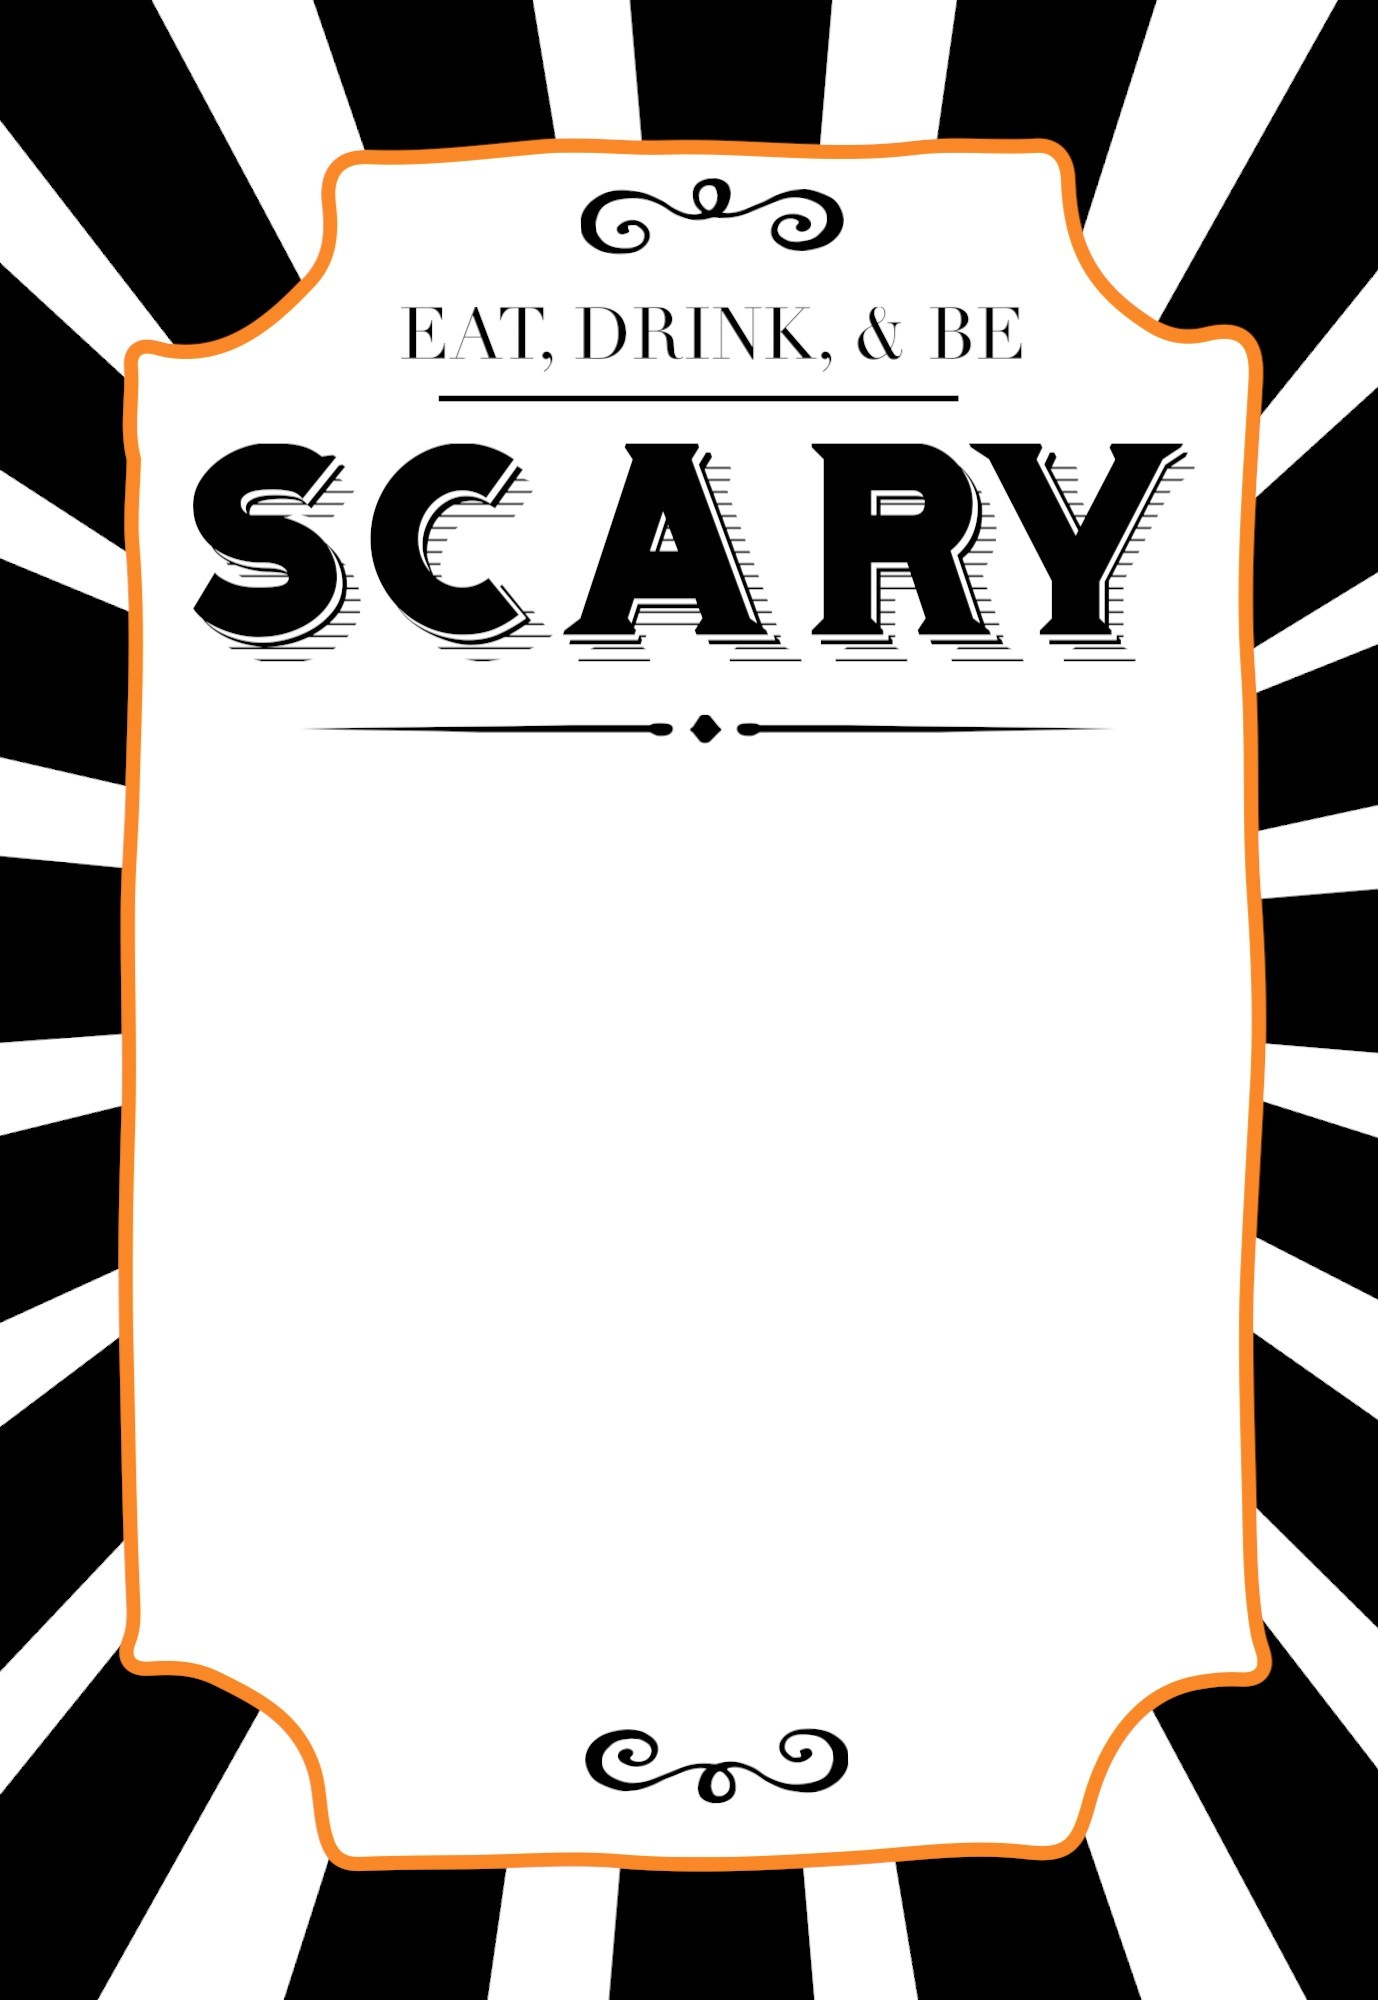 Halloween Invitations Free Printable Template - Paper Trail Design - Halloween Party Invitation Templates Free Printable